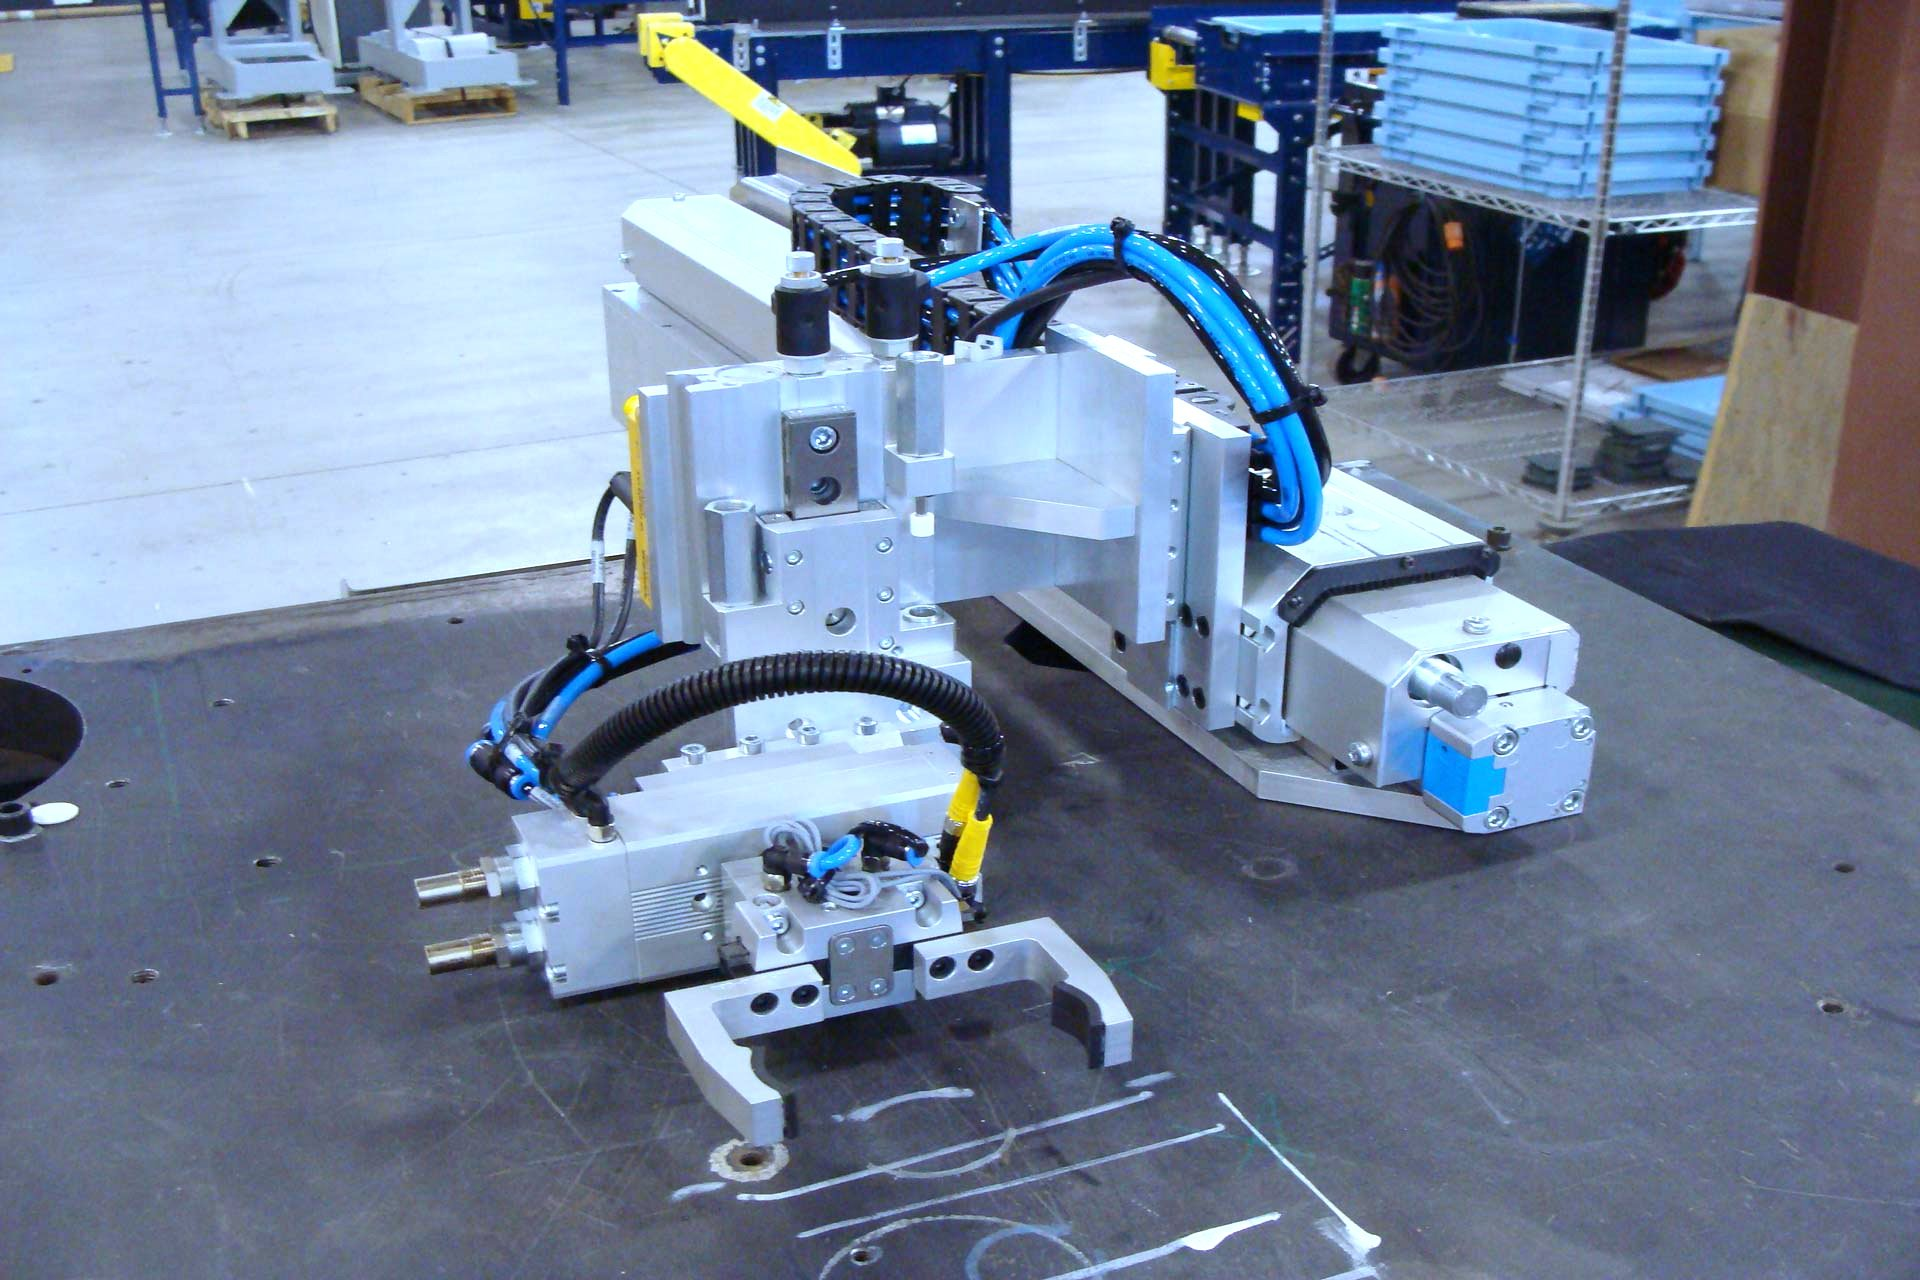 Model MA Press Takeout parallel gripper, pneumatic rotary and Z lift unit. These components function together providing the ability for multiple motion profiles such as: pick/retract/place, pick/lift/retract/lower/place and pick/lift/retract/flip 180/lower/place.